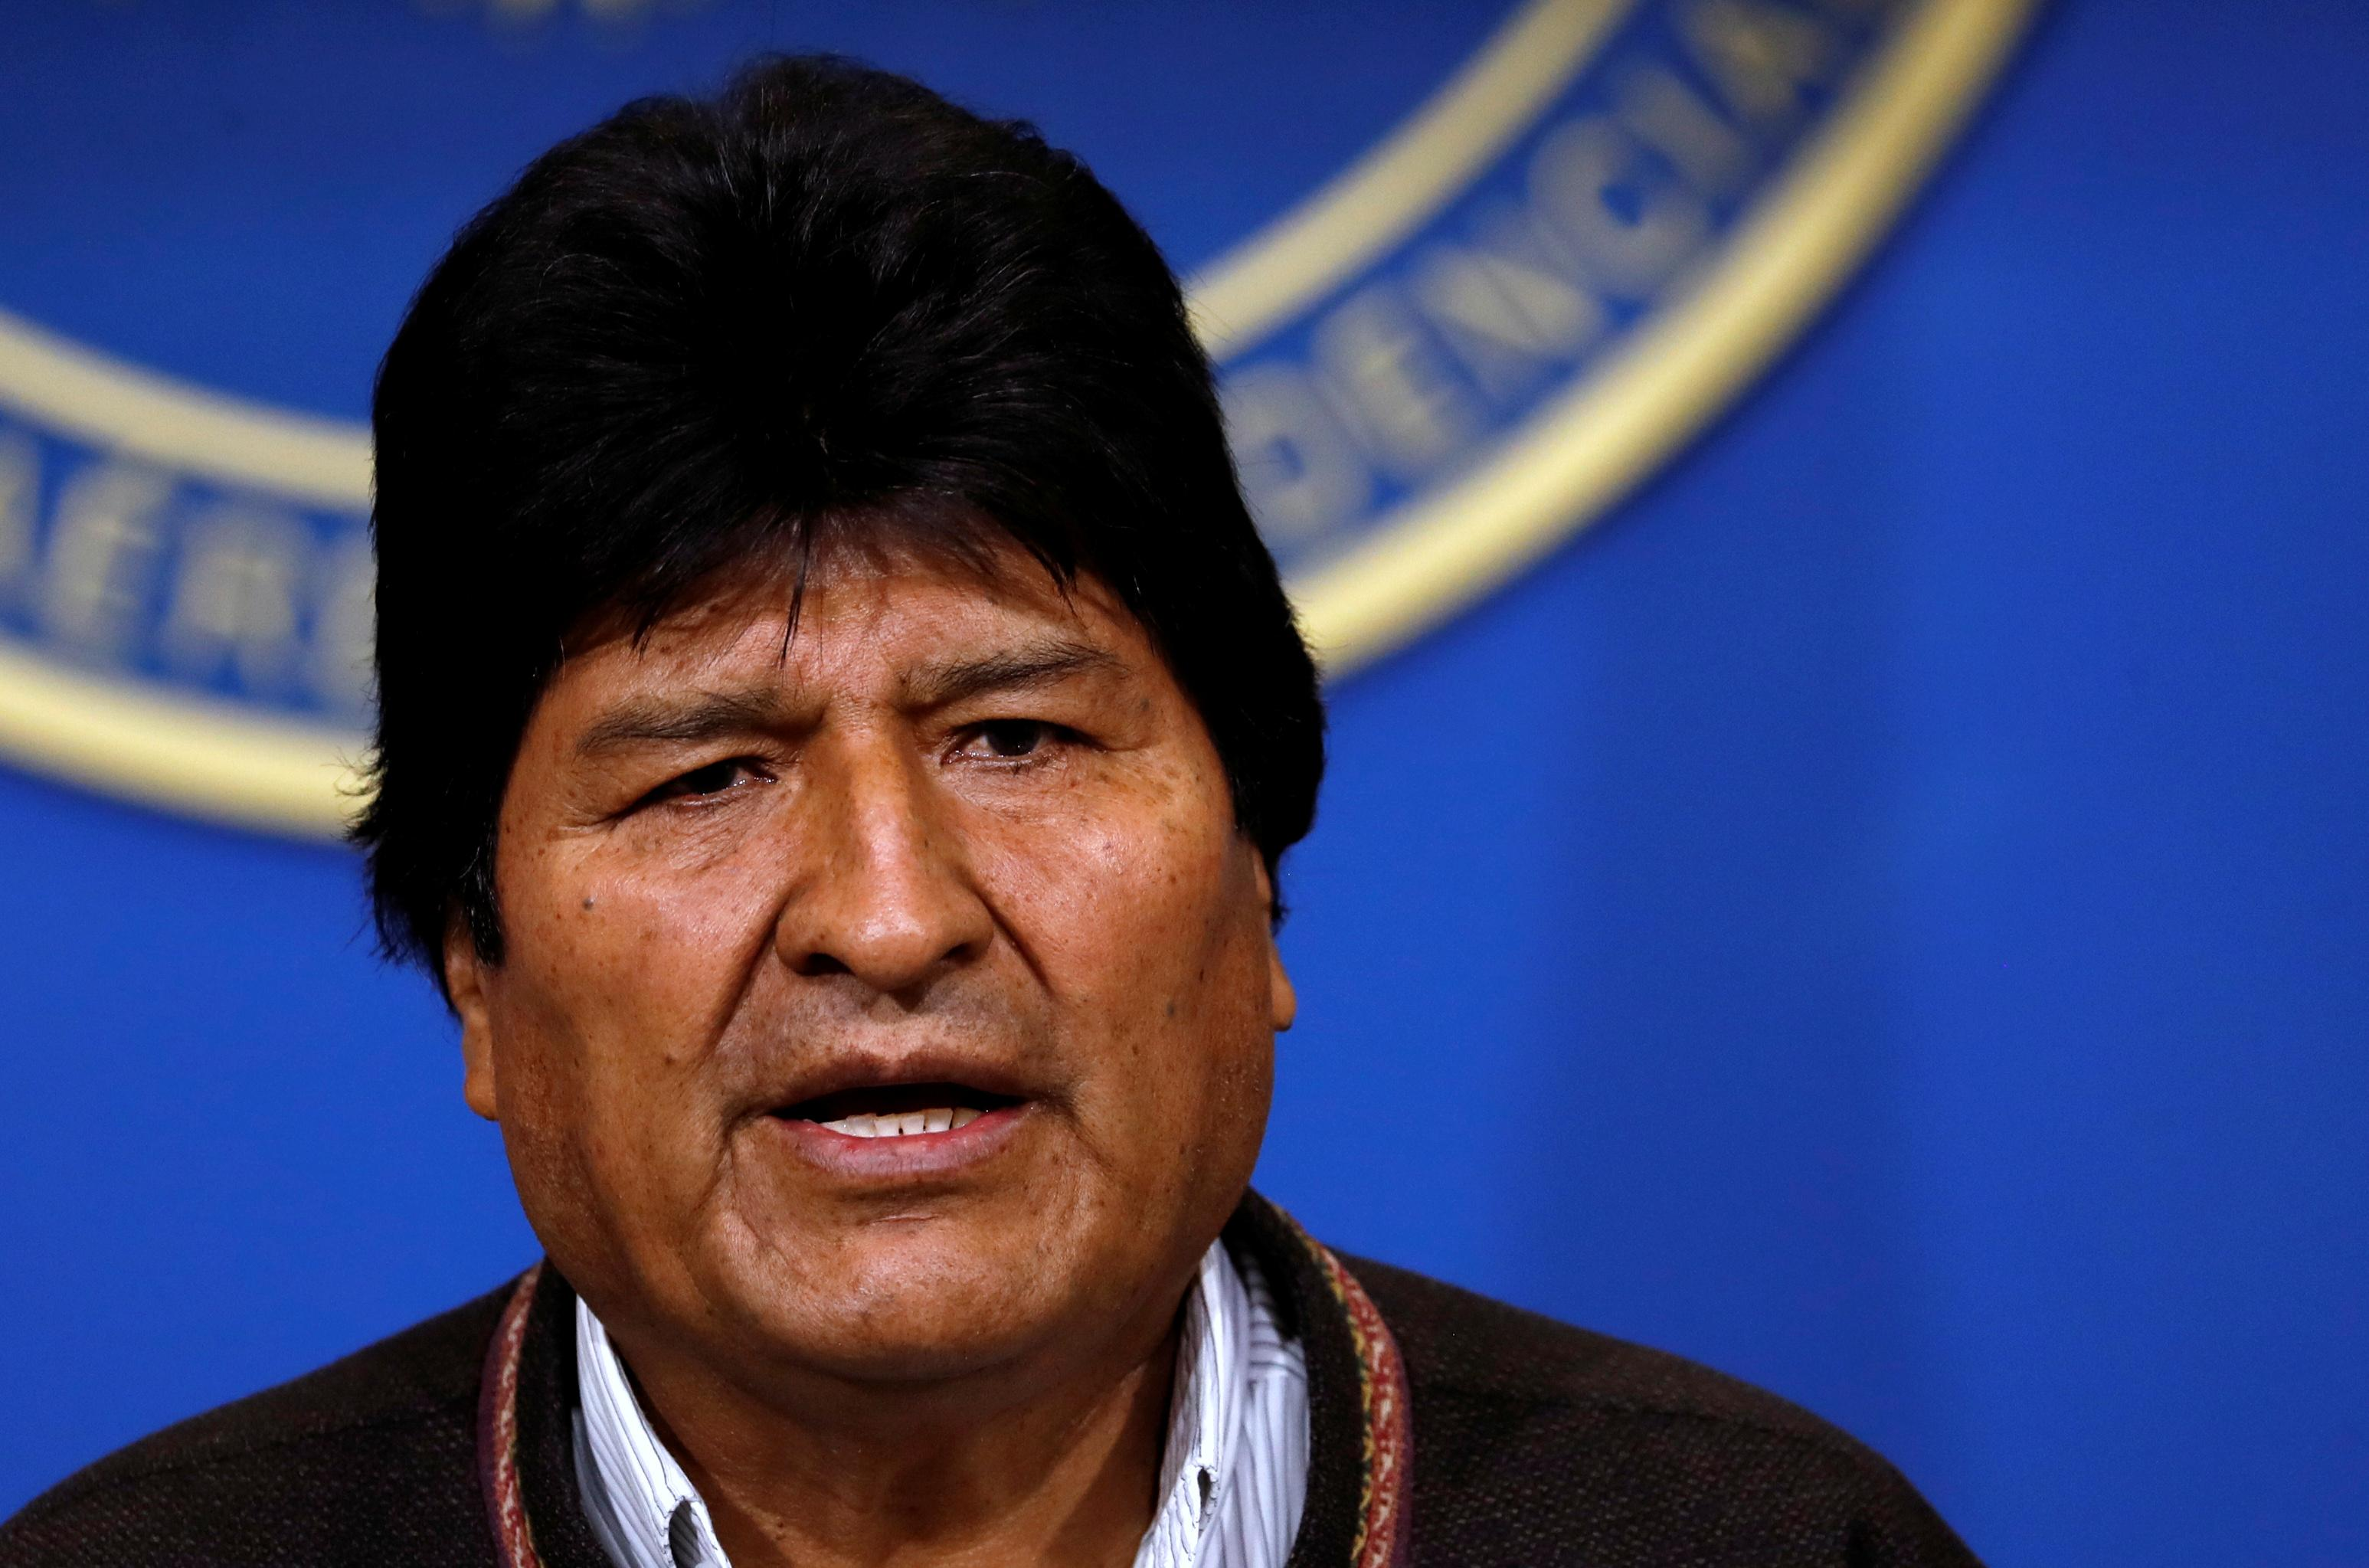 Bolivia's Morales resigns after protests, lashes out at 'coup'